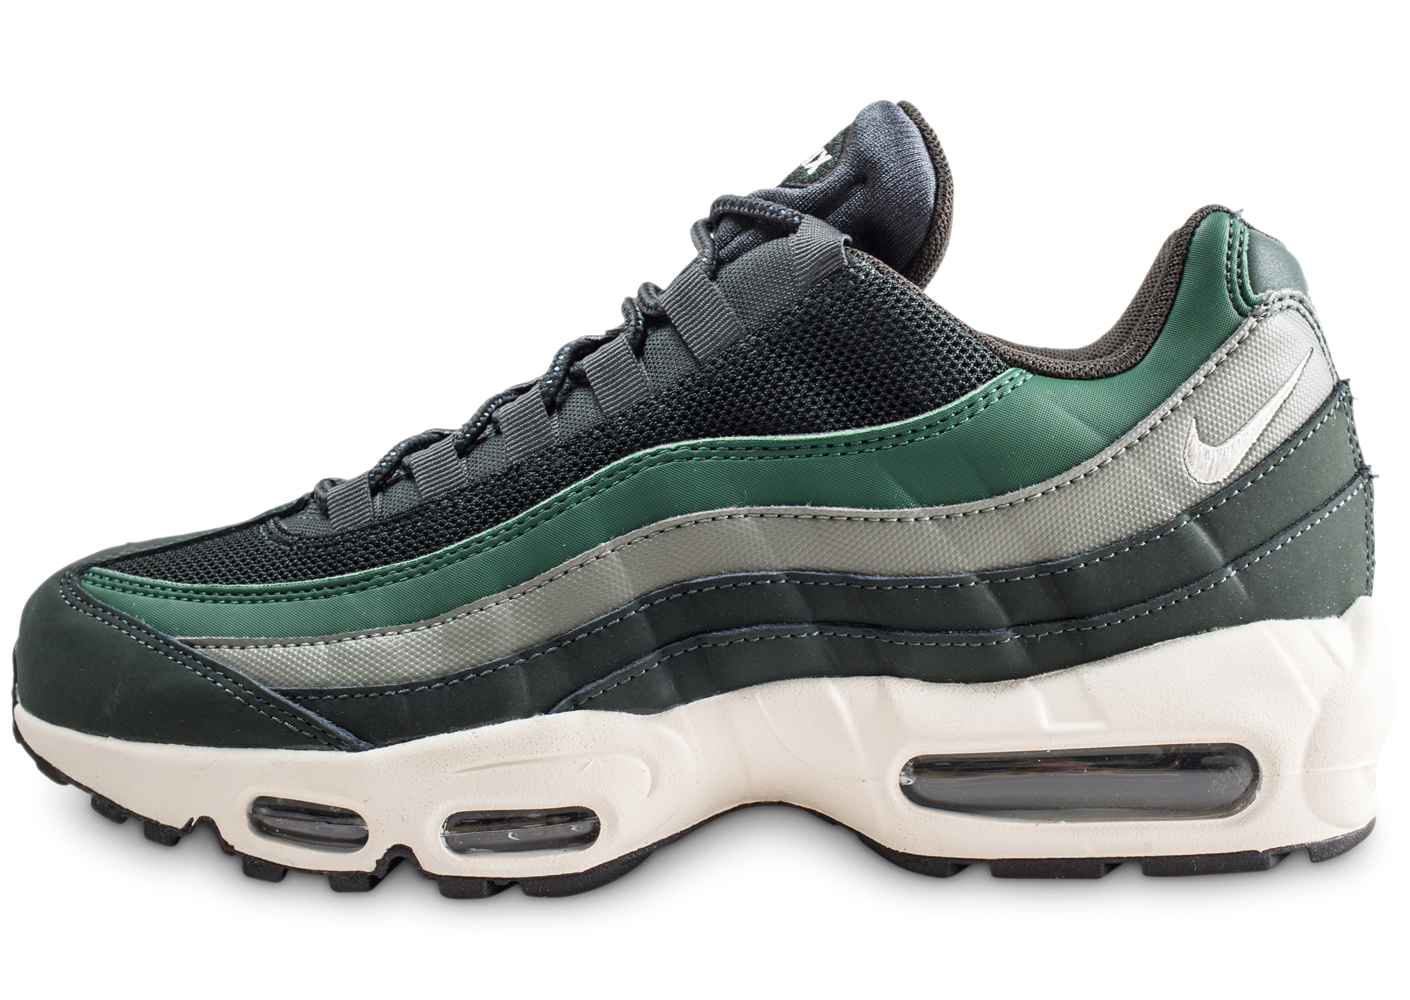 competitive price d1166 752c5 Nike Air Max 95 essential verte - Chaussures Baskets homme - Chausport